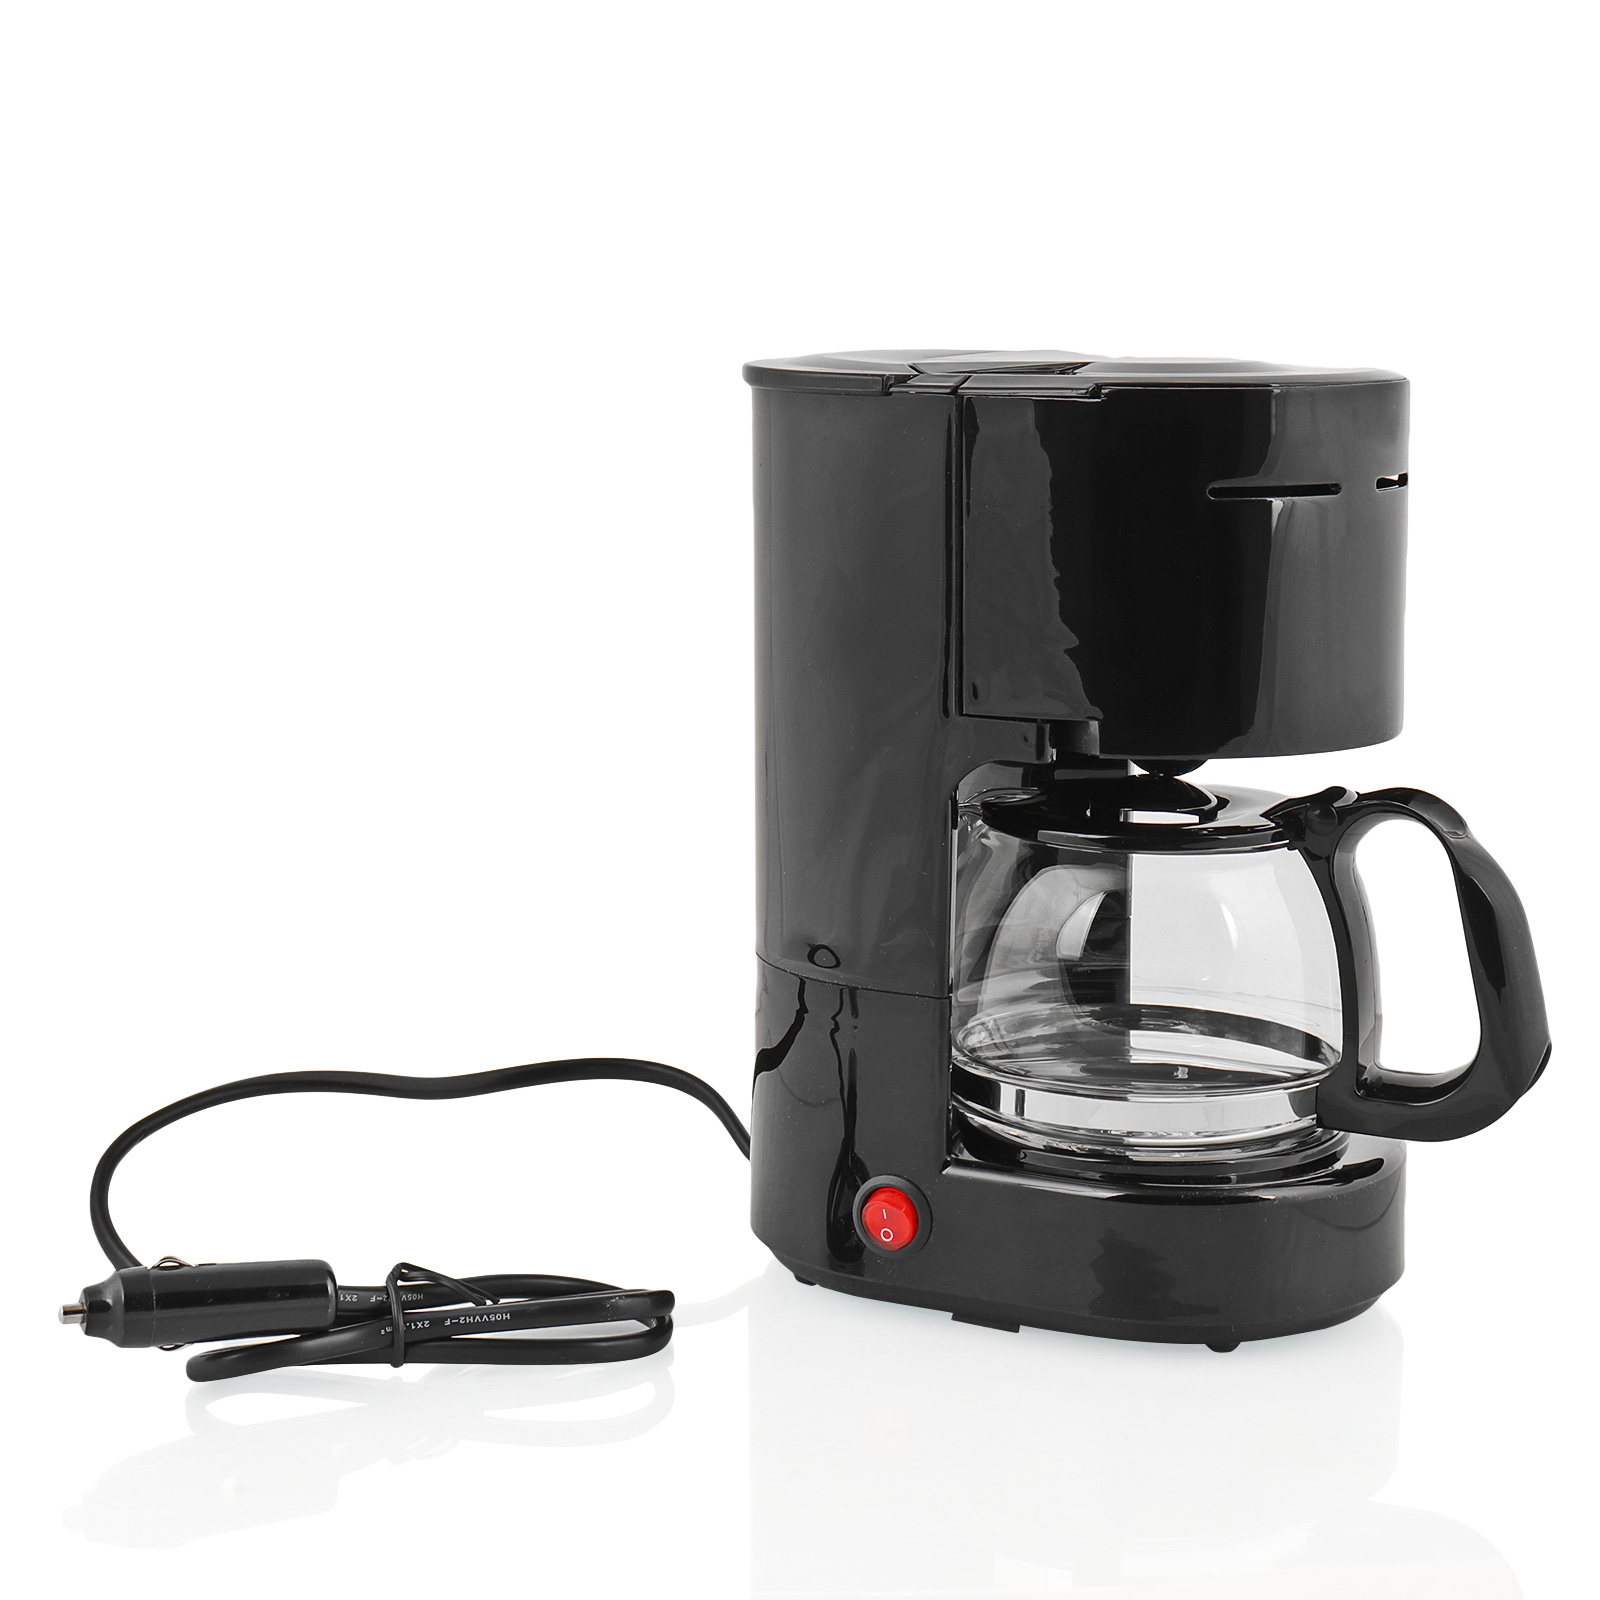 kaffemaschine 12 volt 170 watt 6 tassen dauerfilter. Black Bedroom Furniture Sets. Home Design Ideas